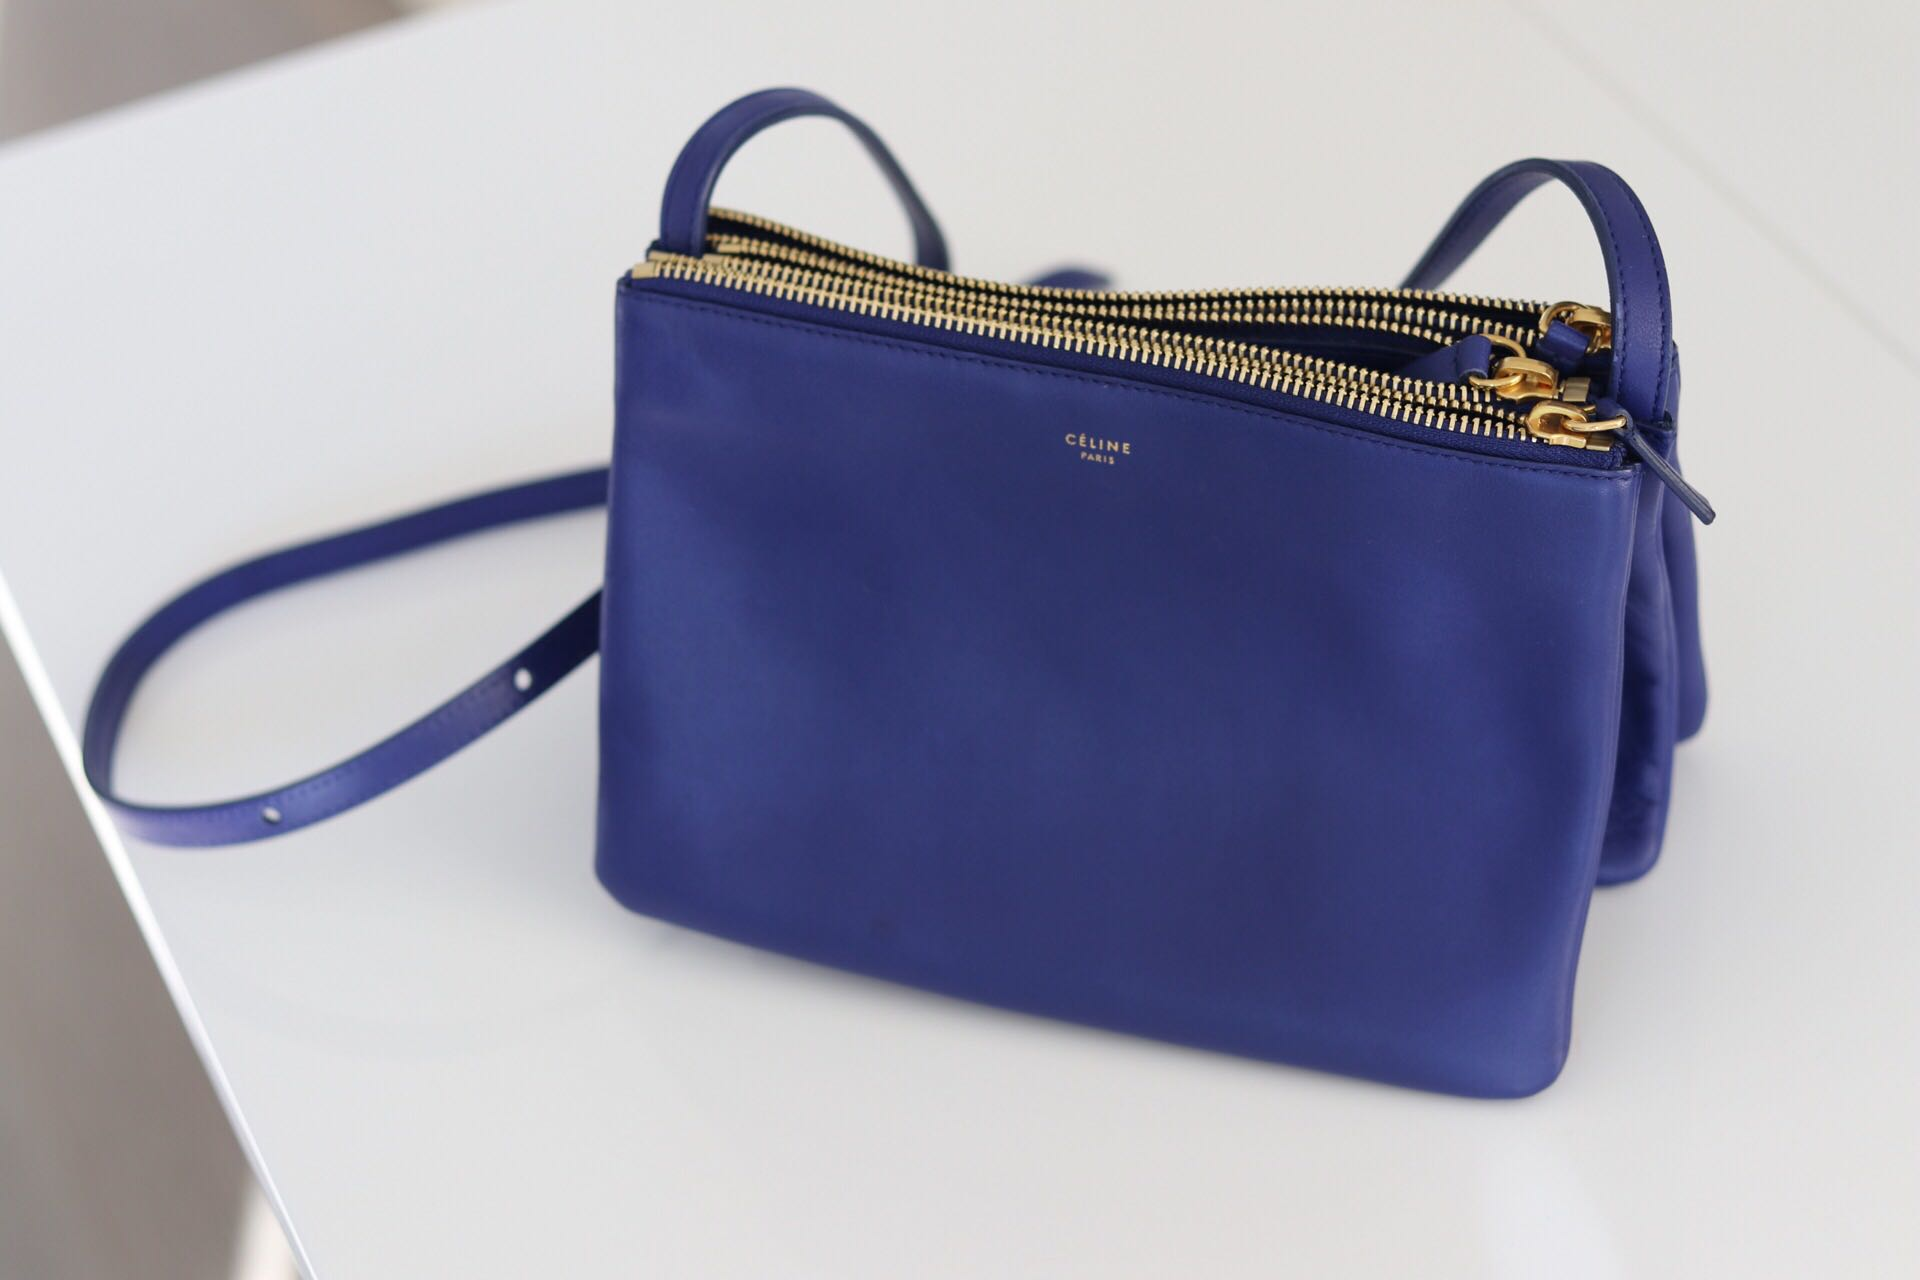 3e3b7c047 Celine Trio Bag in Blue (Small), Women's Fashion, Bags & Wallets on  Carousell